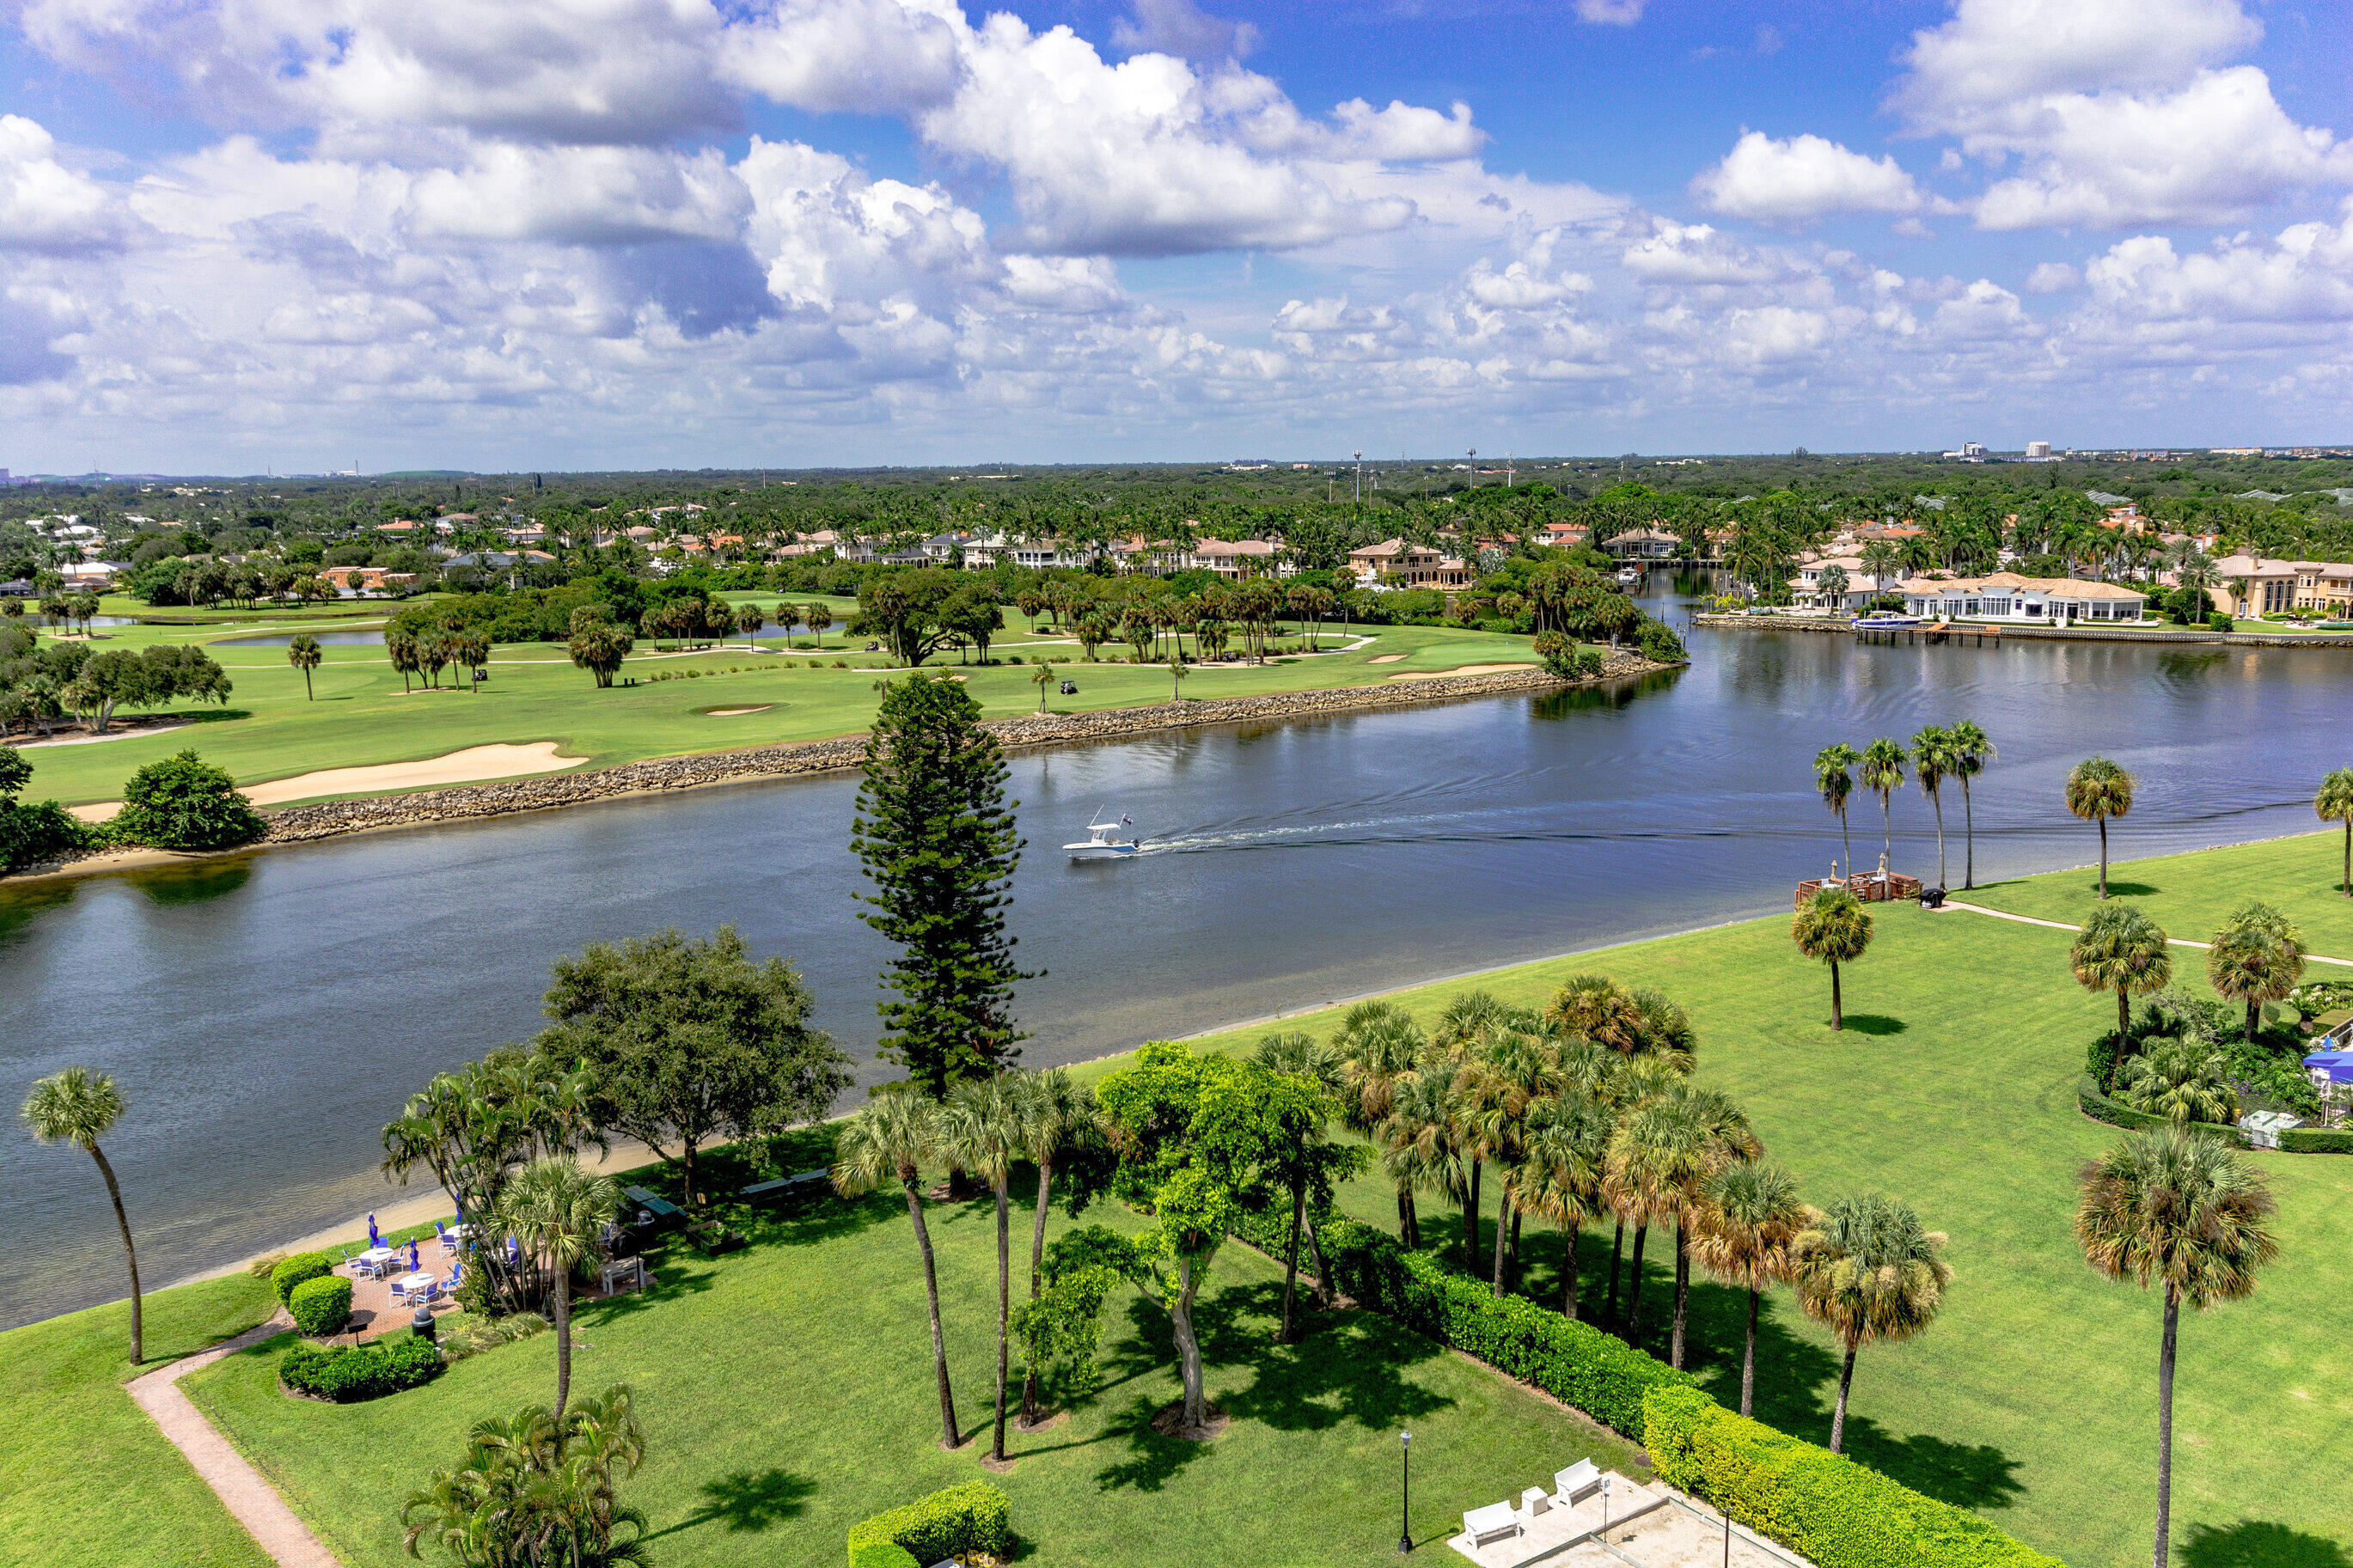 336  Golfview Road 1104 For Sale 10744534, FL